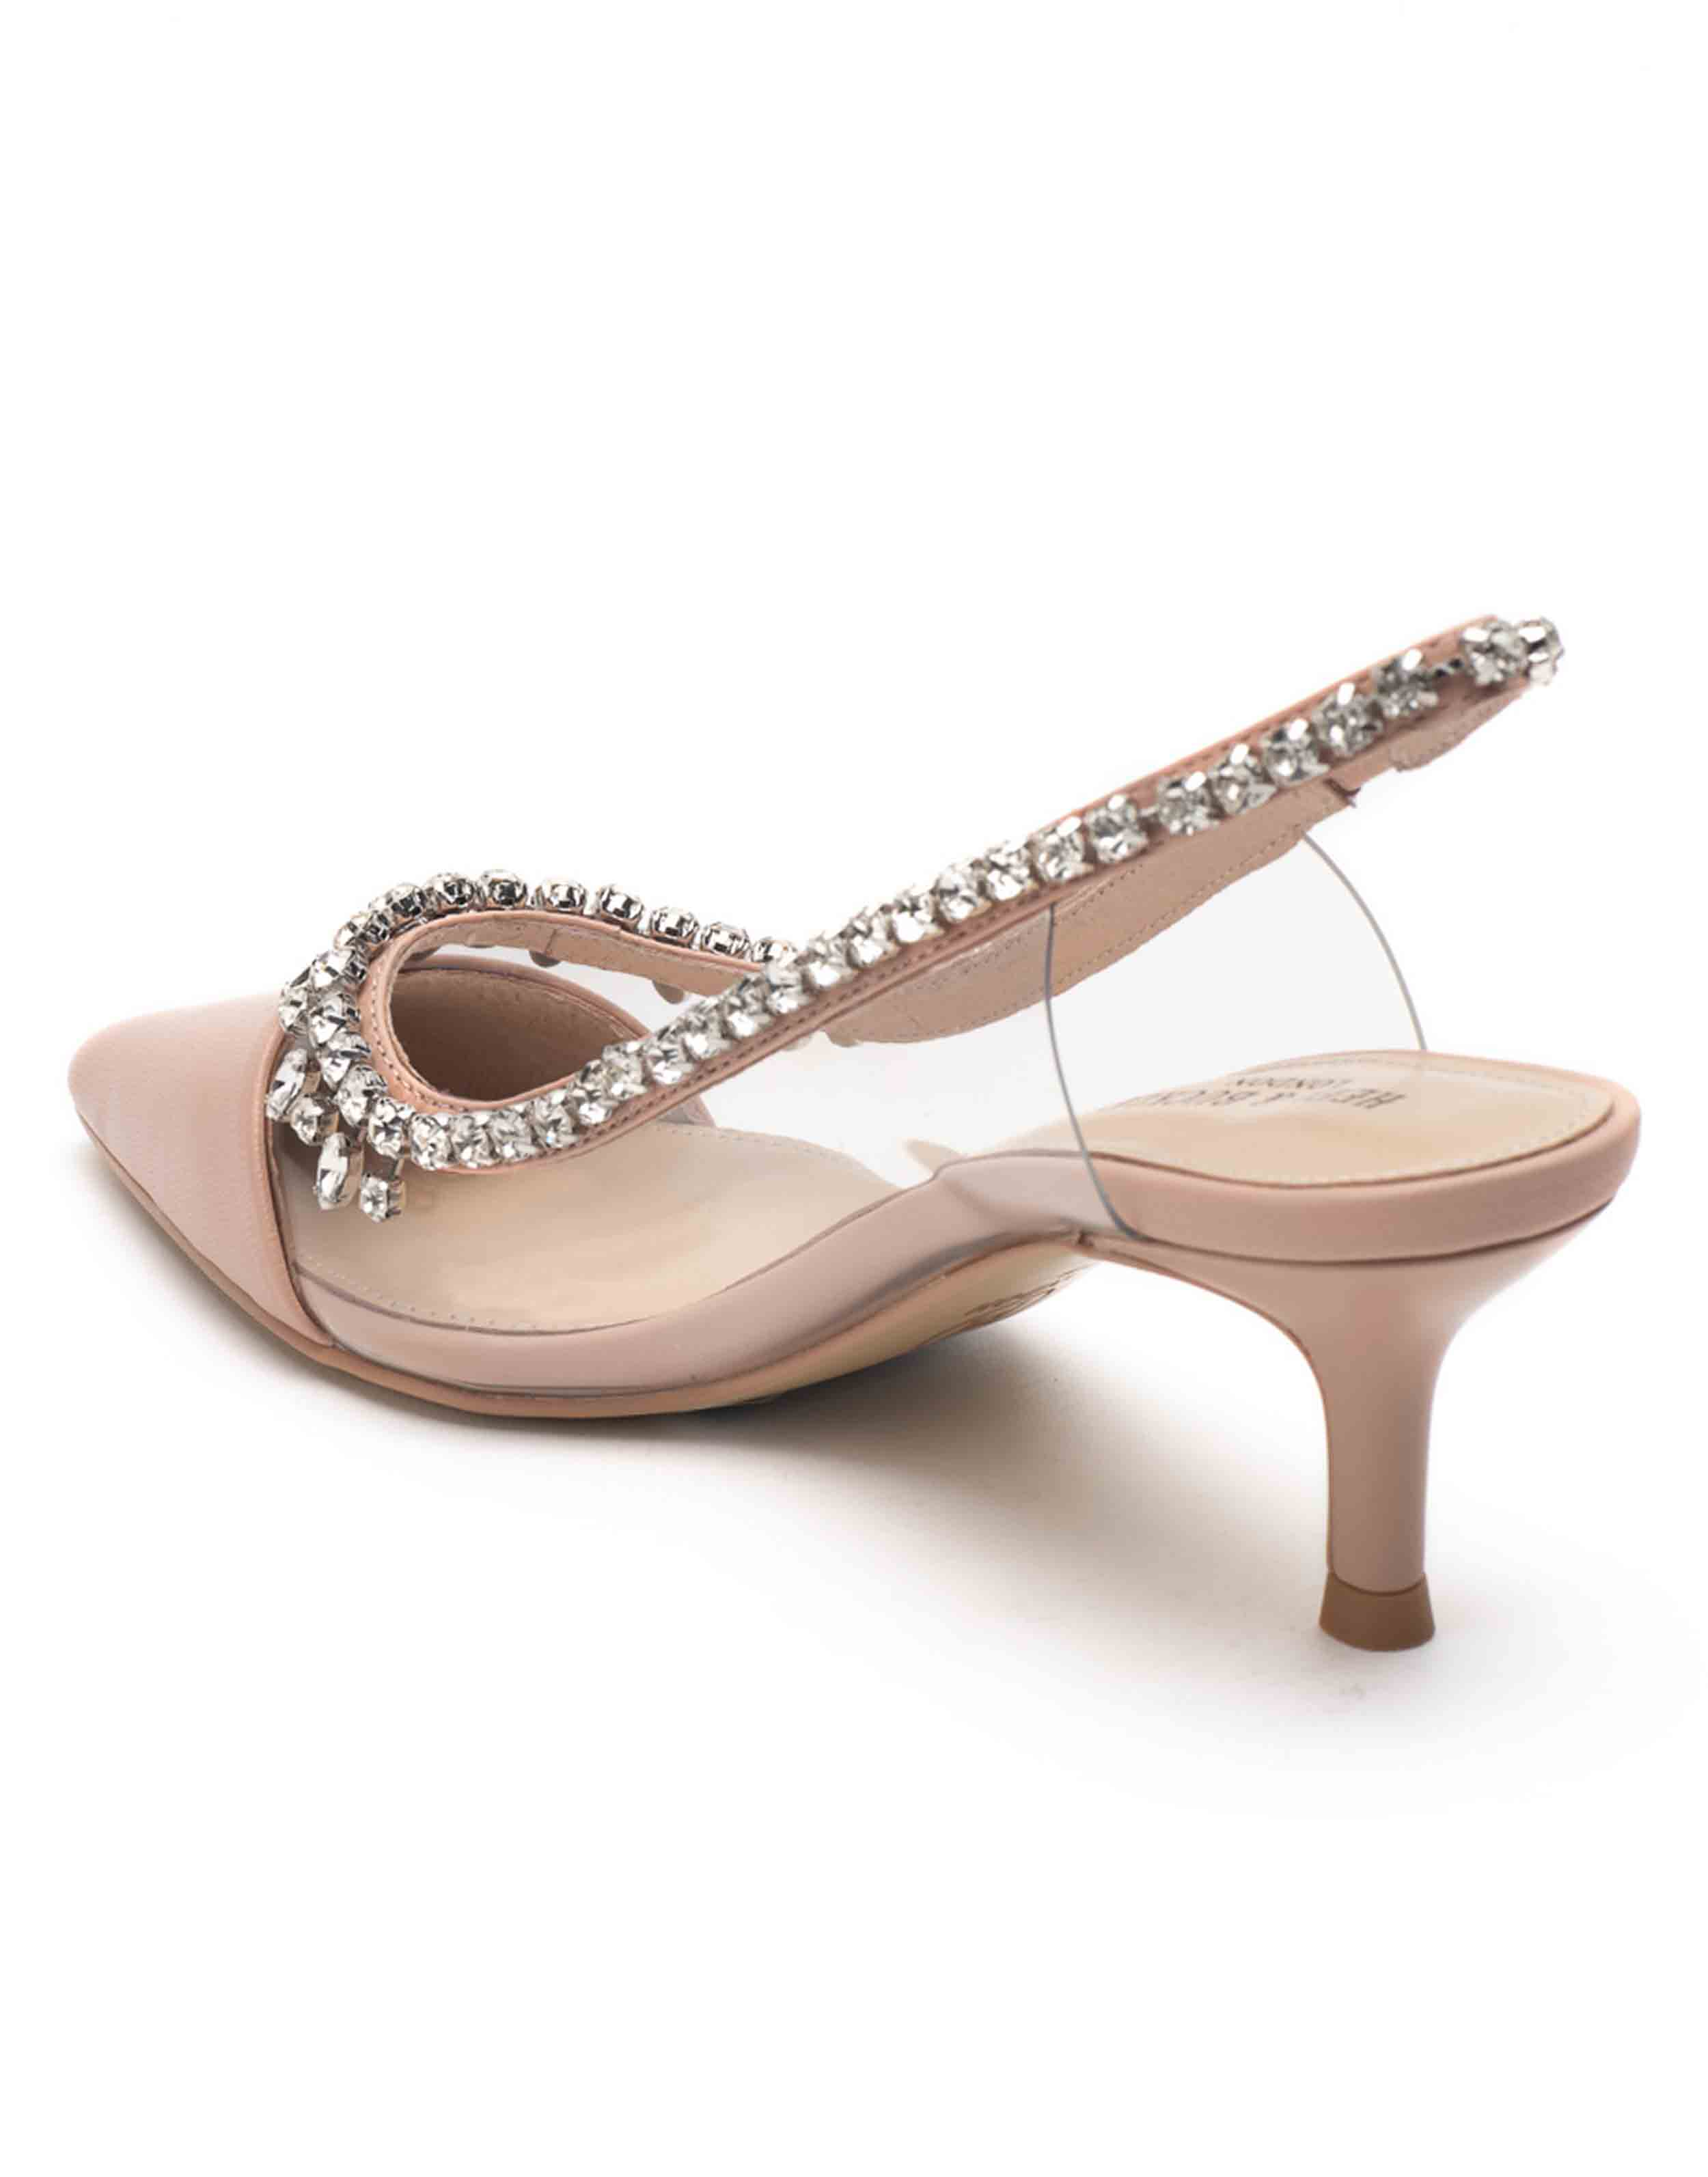 Heel _ Buckle London-Shoes-HBDARW090-Blush Pink Studded Perspex Sandals-3